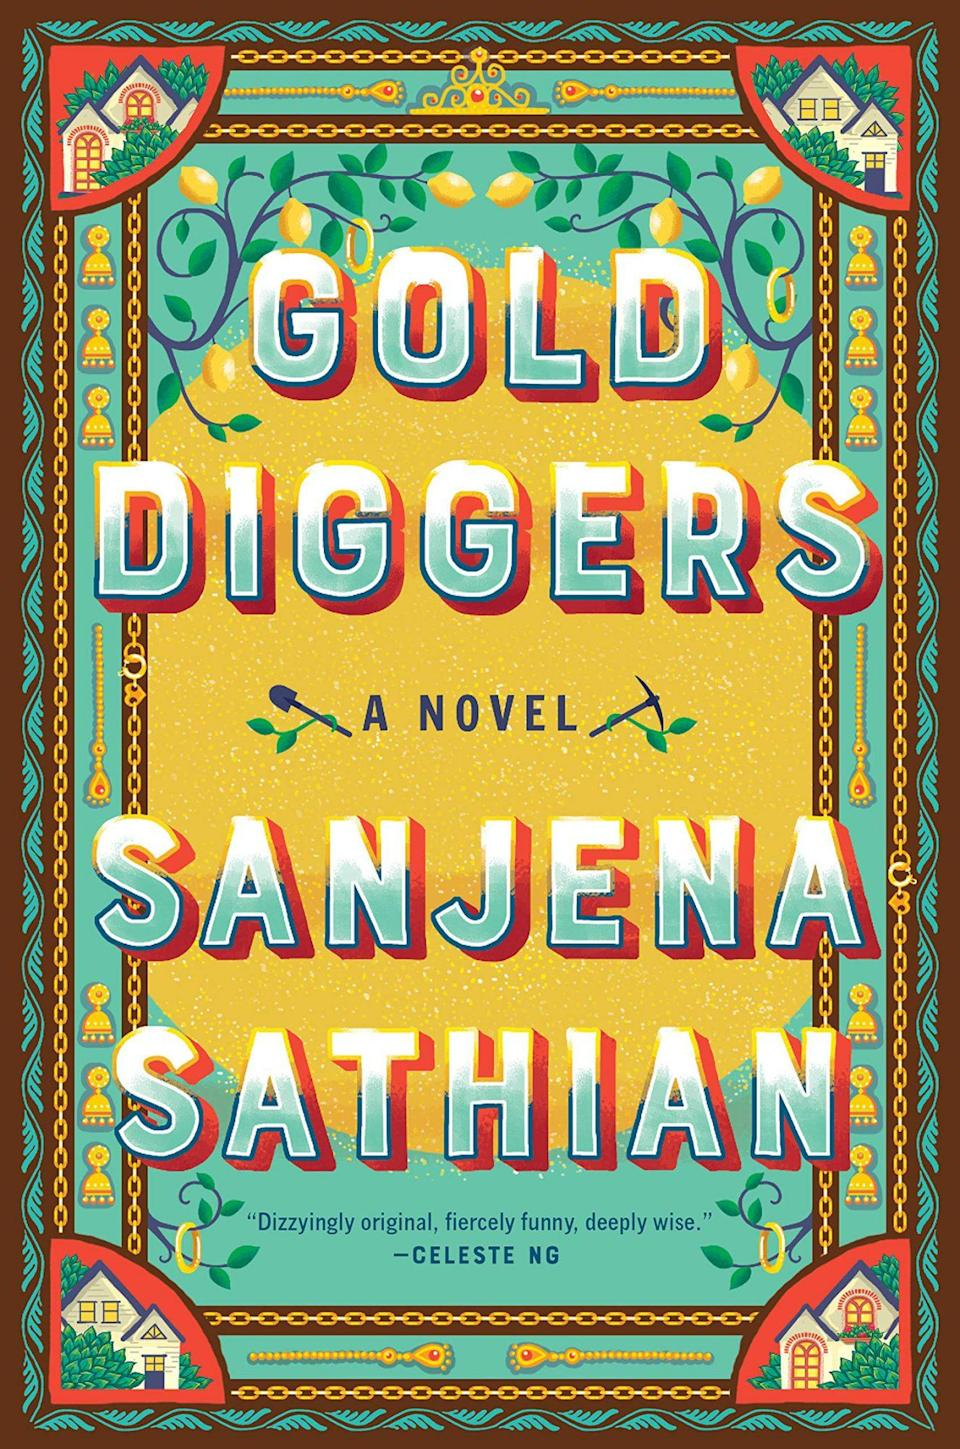 """<p>A tale about two children (and neighbors) growing up under the strict rule of their Indian immigrant parents becomes otherworldly when Neil discovers that Anita has an ancient potion that allows the recipient to harness ambition. <a href=""""https://ew.com/tag/mindy-kaling/"""" rel=""""nofollow noopener"""" target=""""_blank"""" data-ylk=""""slk:Mindy Kaling"""" class=""""link rapid-noclick-resp"""">Mindy Kaling</a> is currently adapting the book as a television series. (April 6)</p>"""